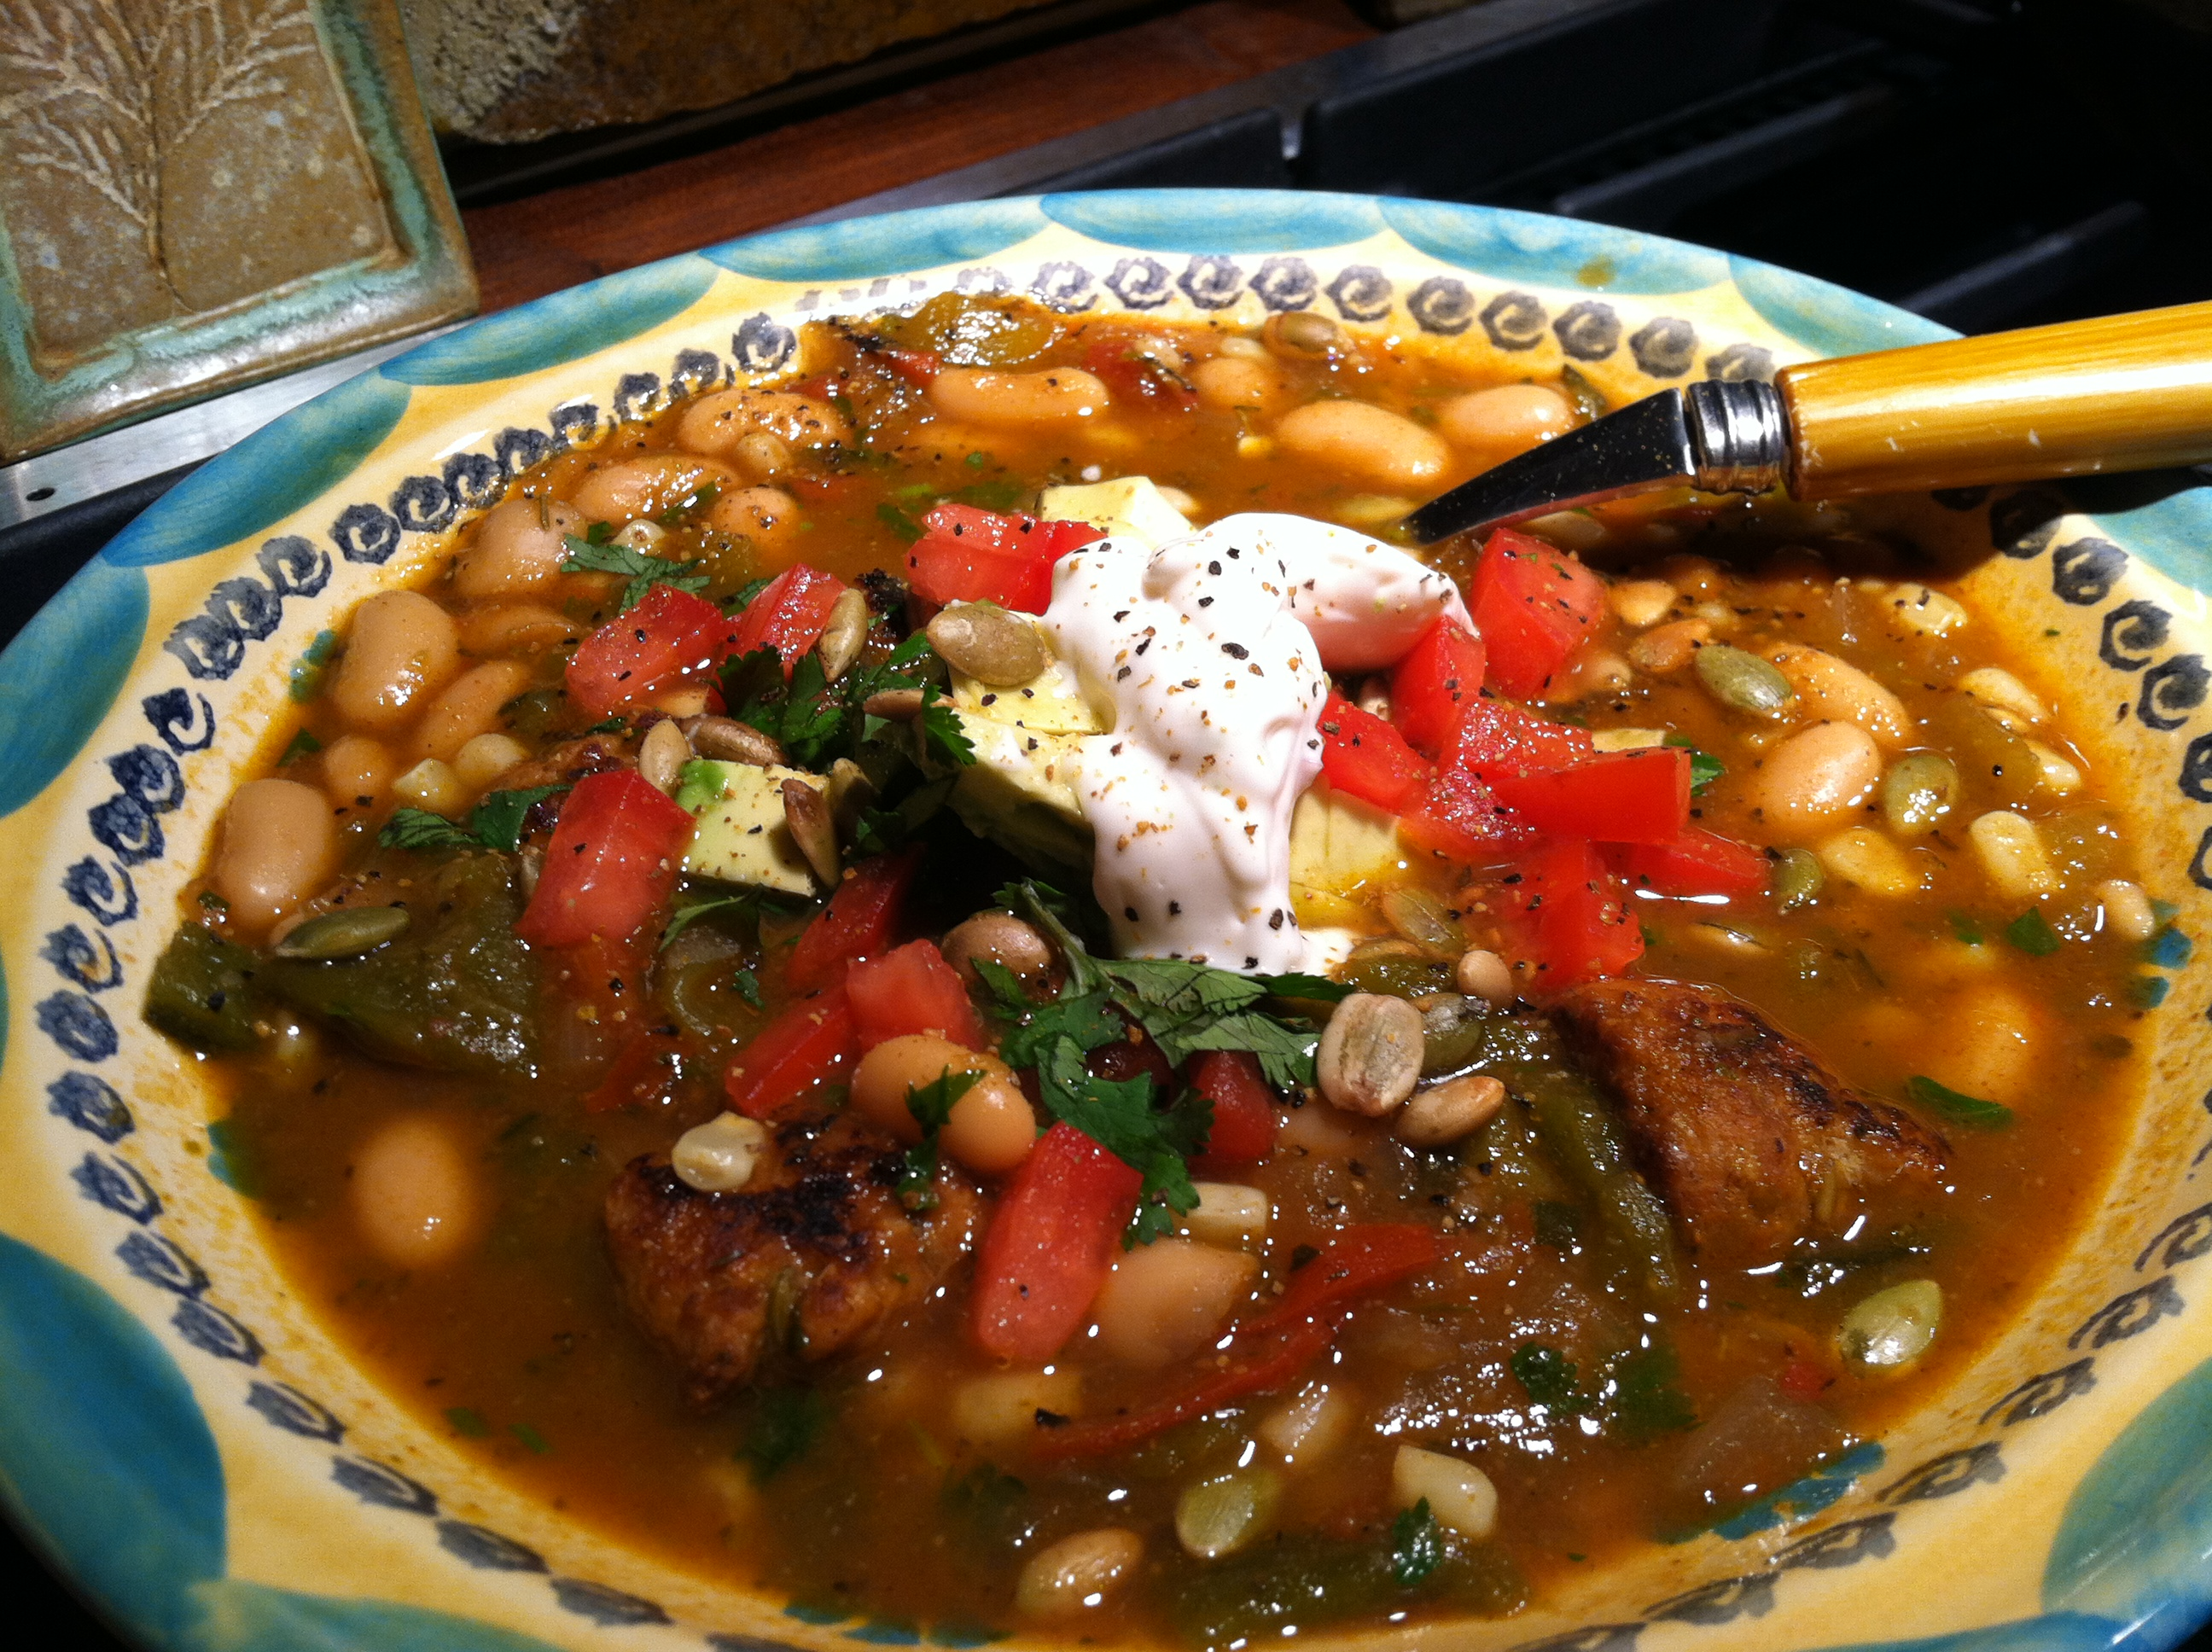 Chicken, White Bean and Poblano Chili topped with Cilantro